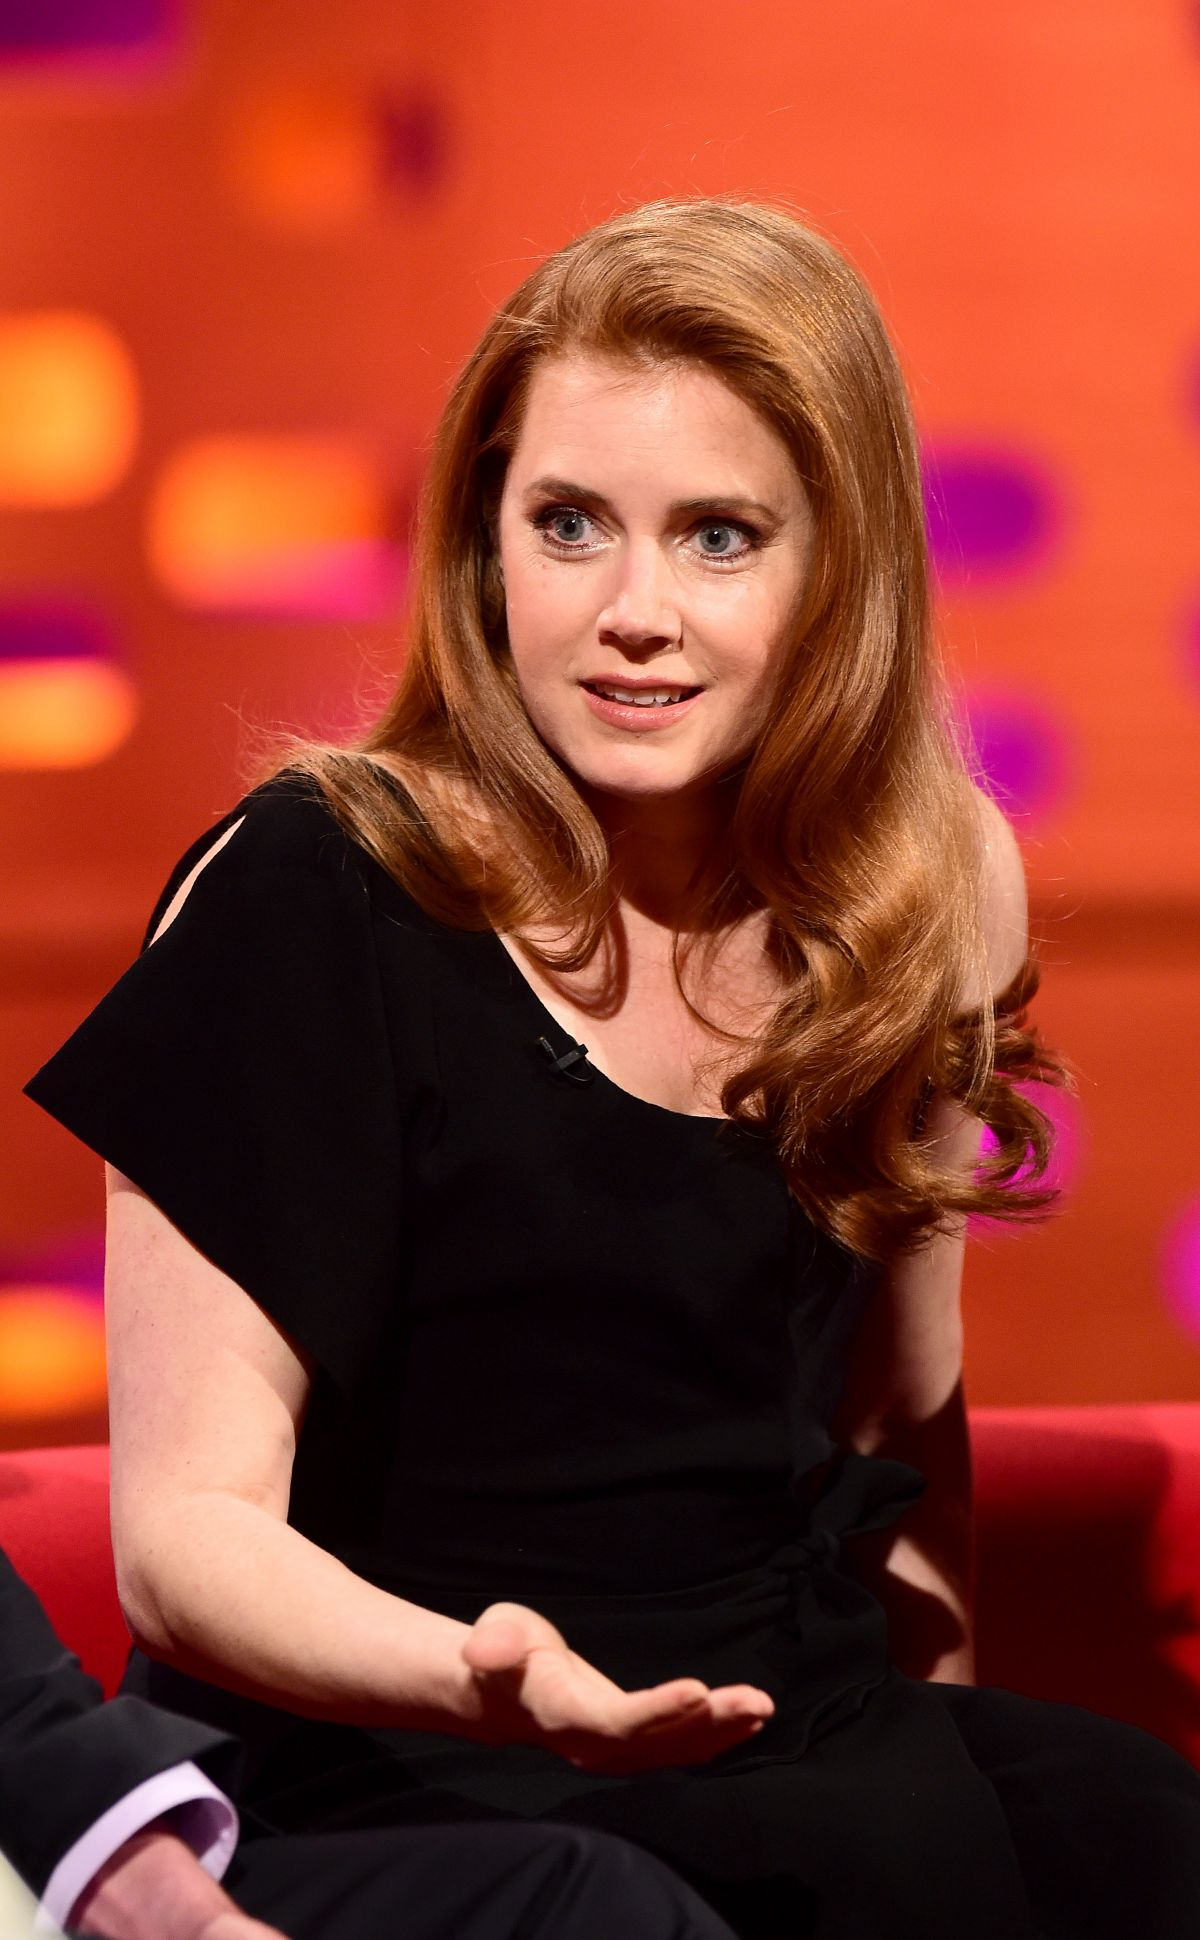 AMY ADAMS at The Graham Norton Show in London 03/31/2016